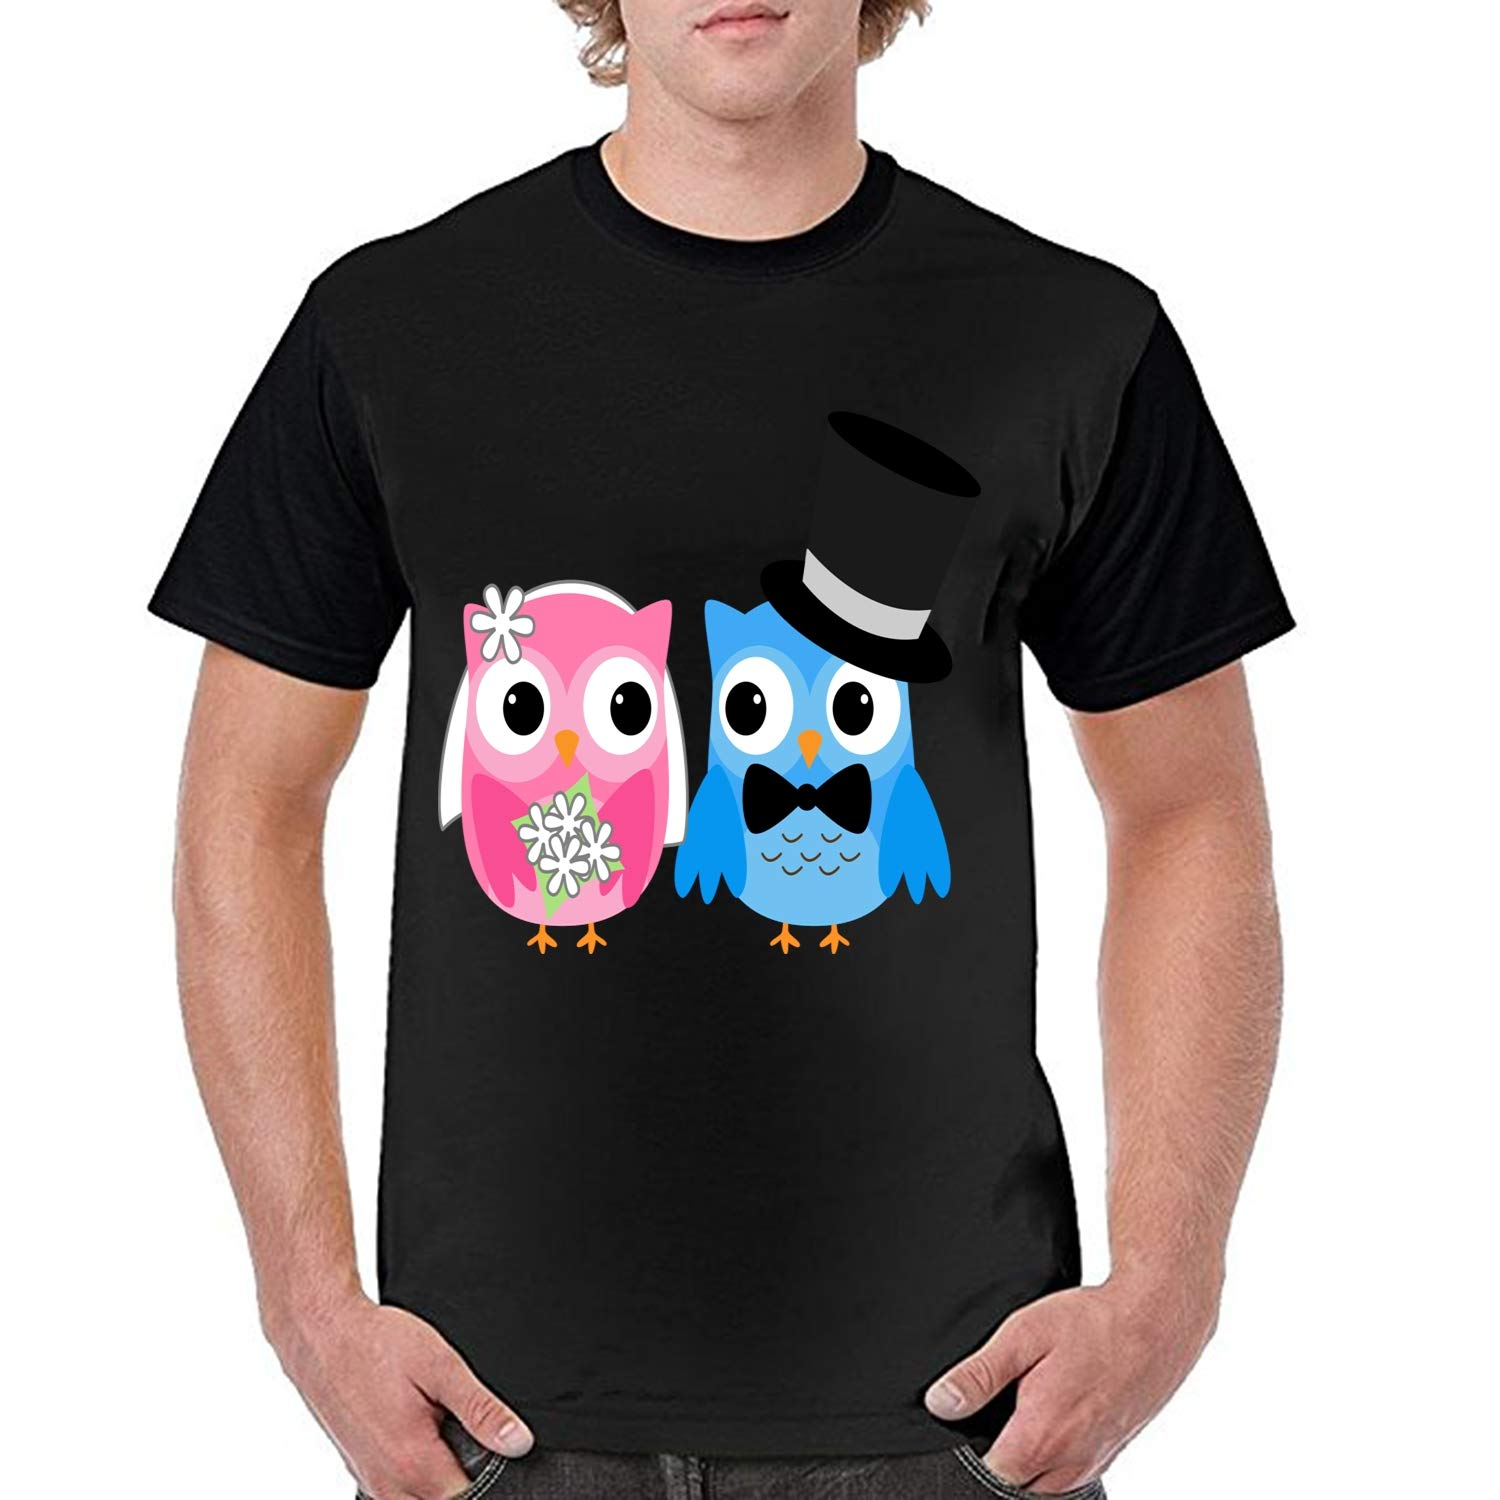 Owl Wedding Unisex Modern FIT T-Shirt£¬Summer Short Sleeved Fashion Lounge Cotton Blouse